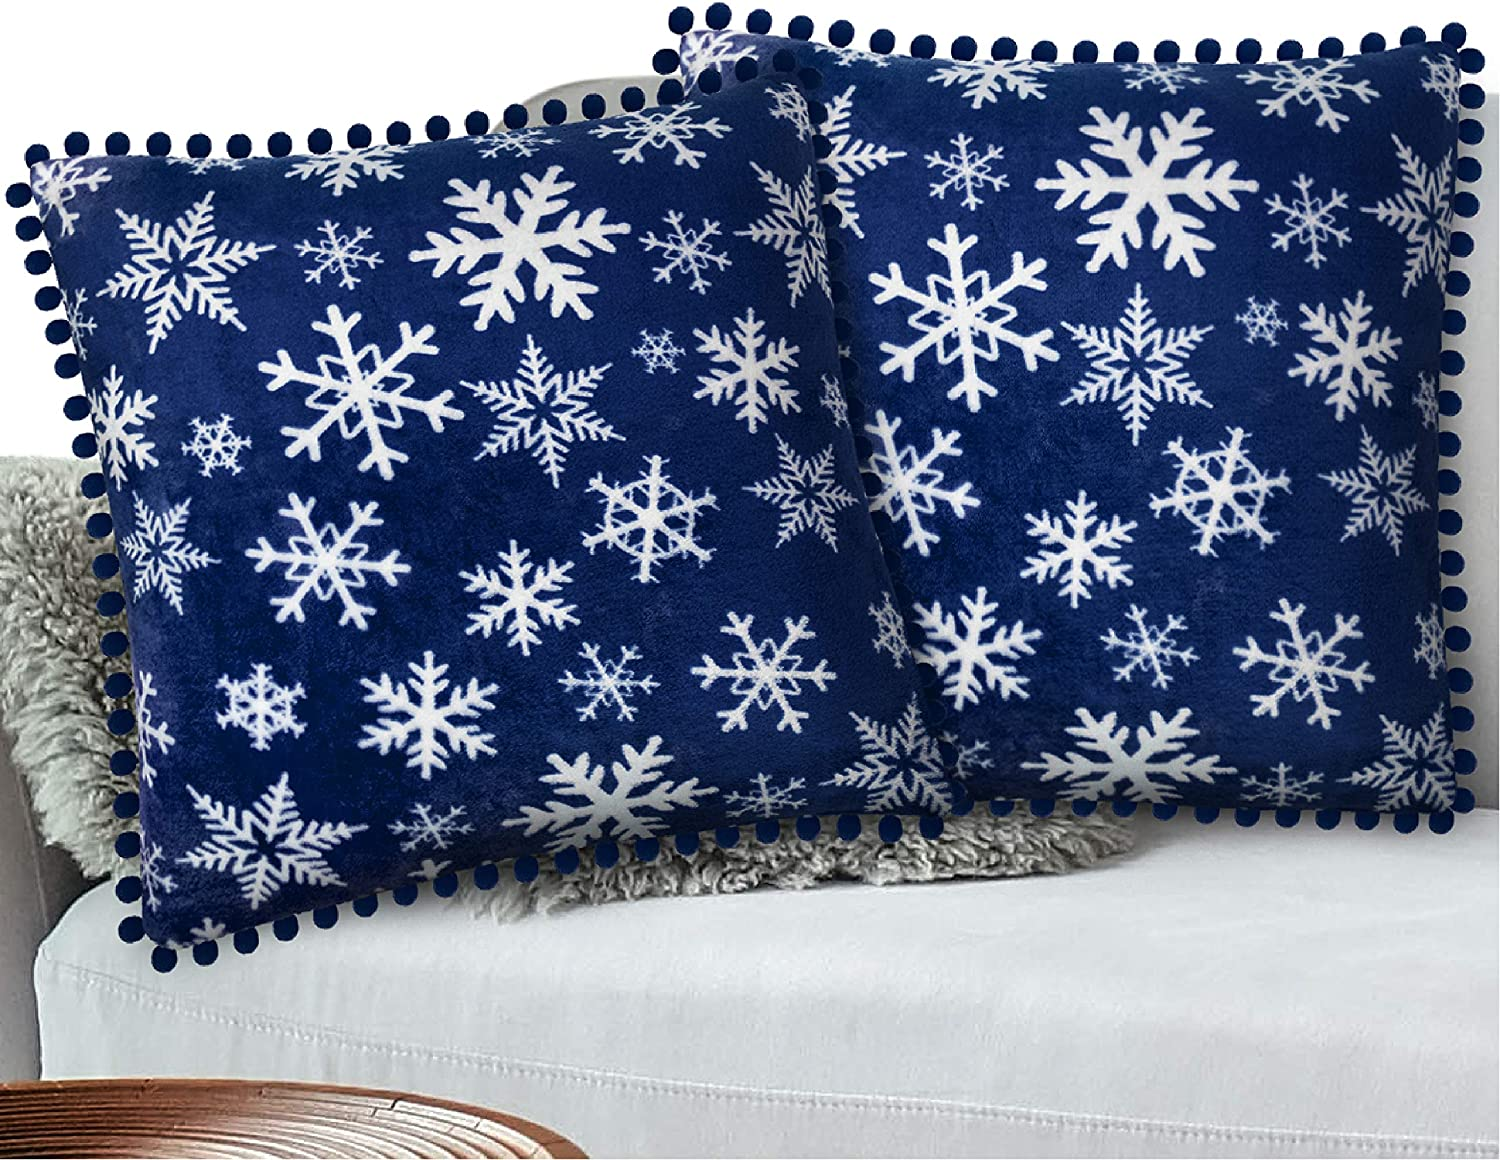 PAVILIA Holiday Fleece Throw Pillow Cover with Pom Pom Fringe, Set of 2 | Christmas Decorative Cushion Covers for Sofa Couch Bed Living Room 20 x 20 Inches, Snowflake Blue